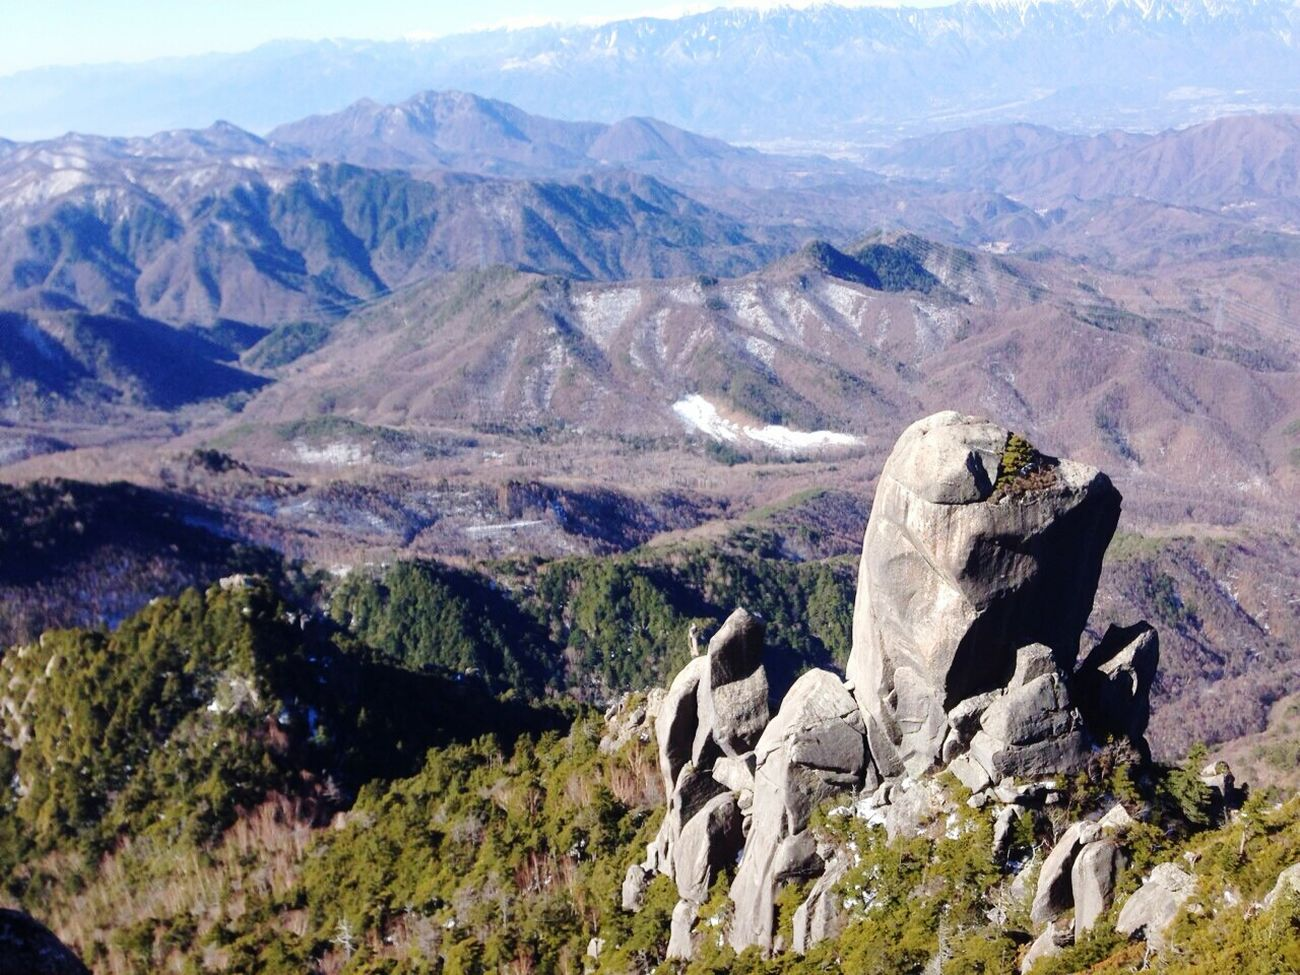 Photos of this beautiful place Mountains Snow Big Rock Beautiful , Mt.Mizugaki in Japan